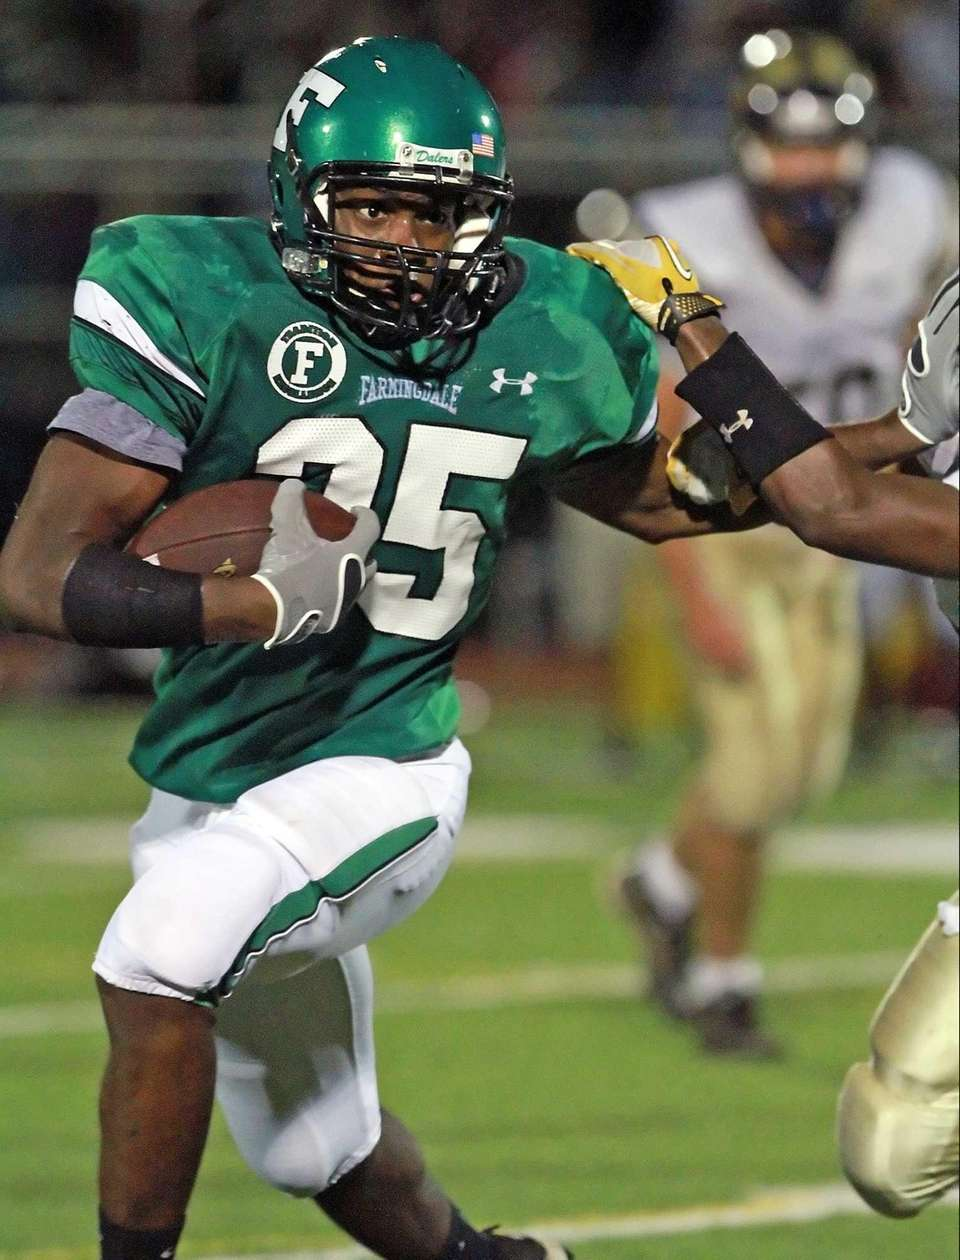 Farmingdale's Kevin Petit-Frere stiff arms a defender during